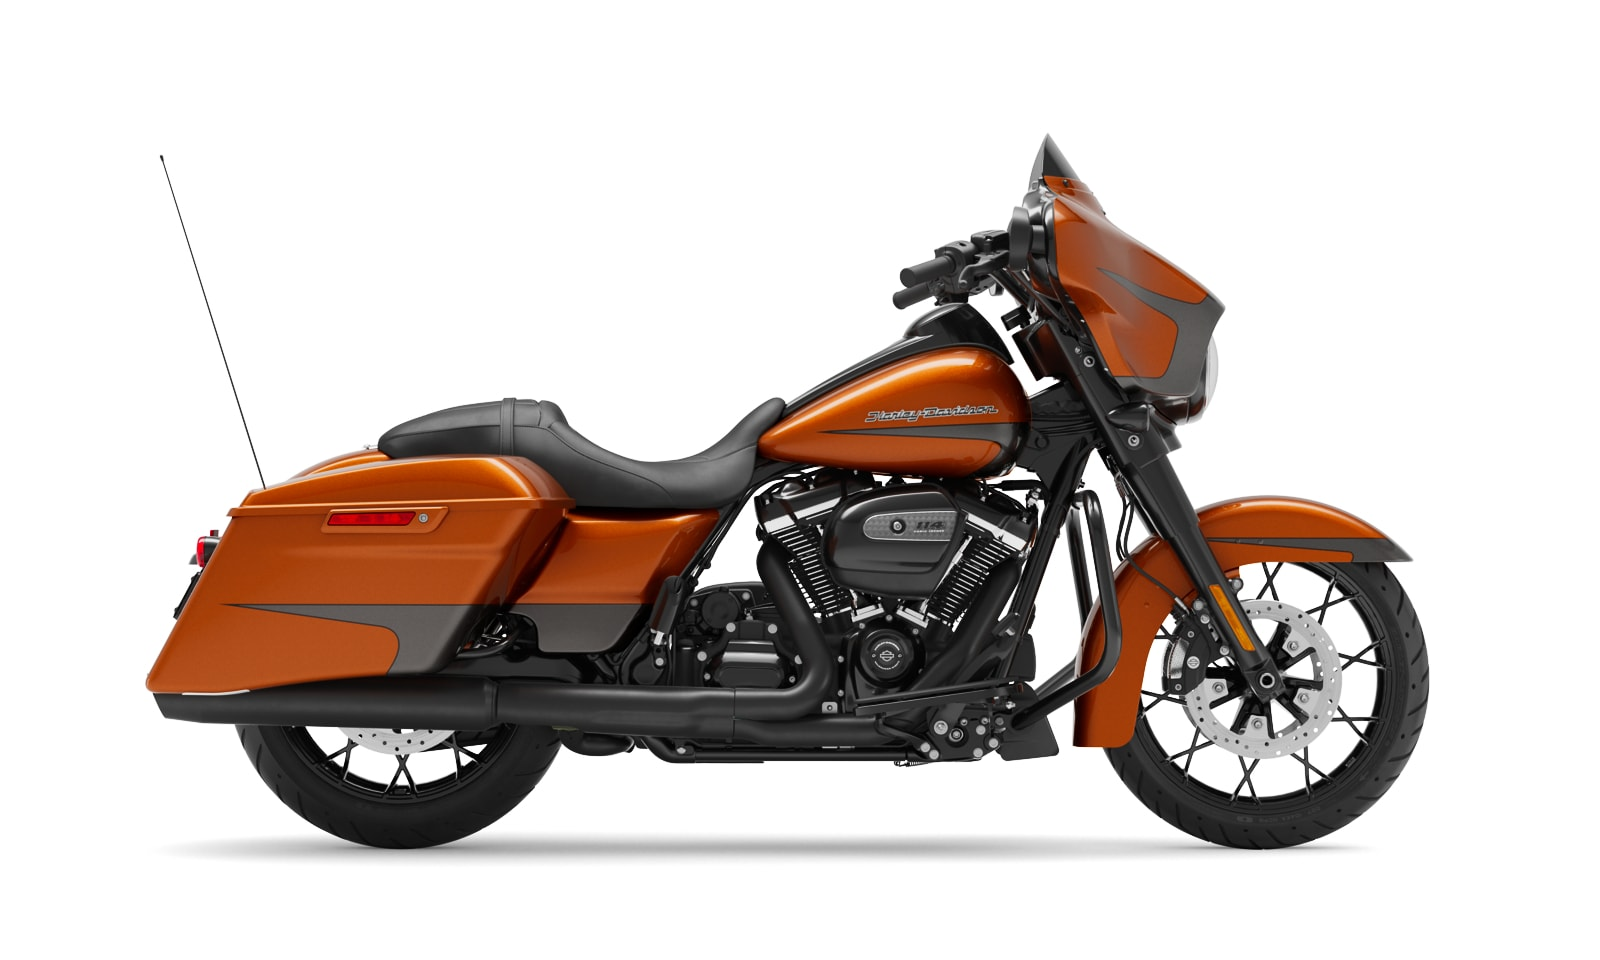 2020 street glide special motorcycle